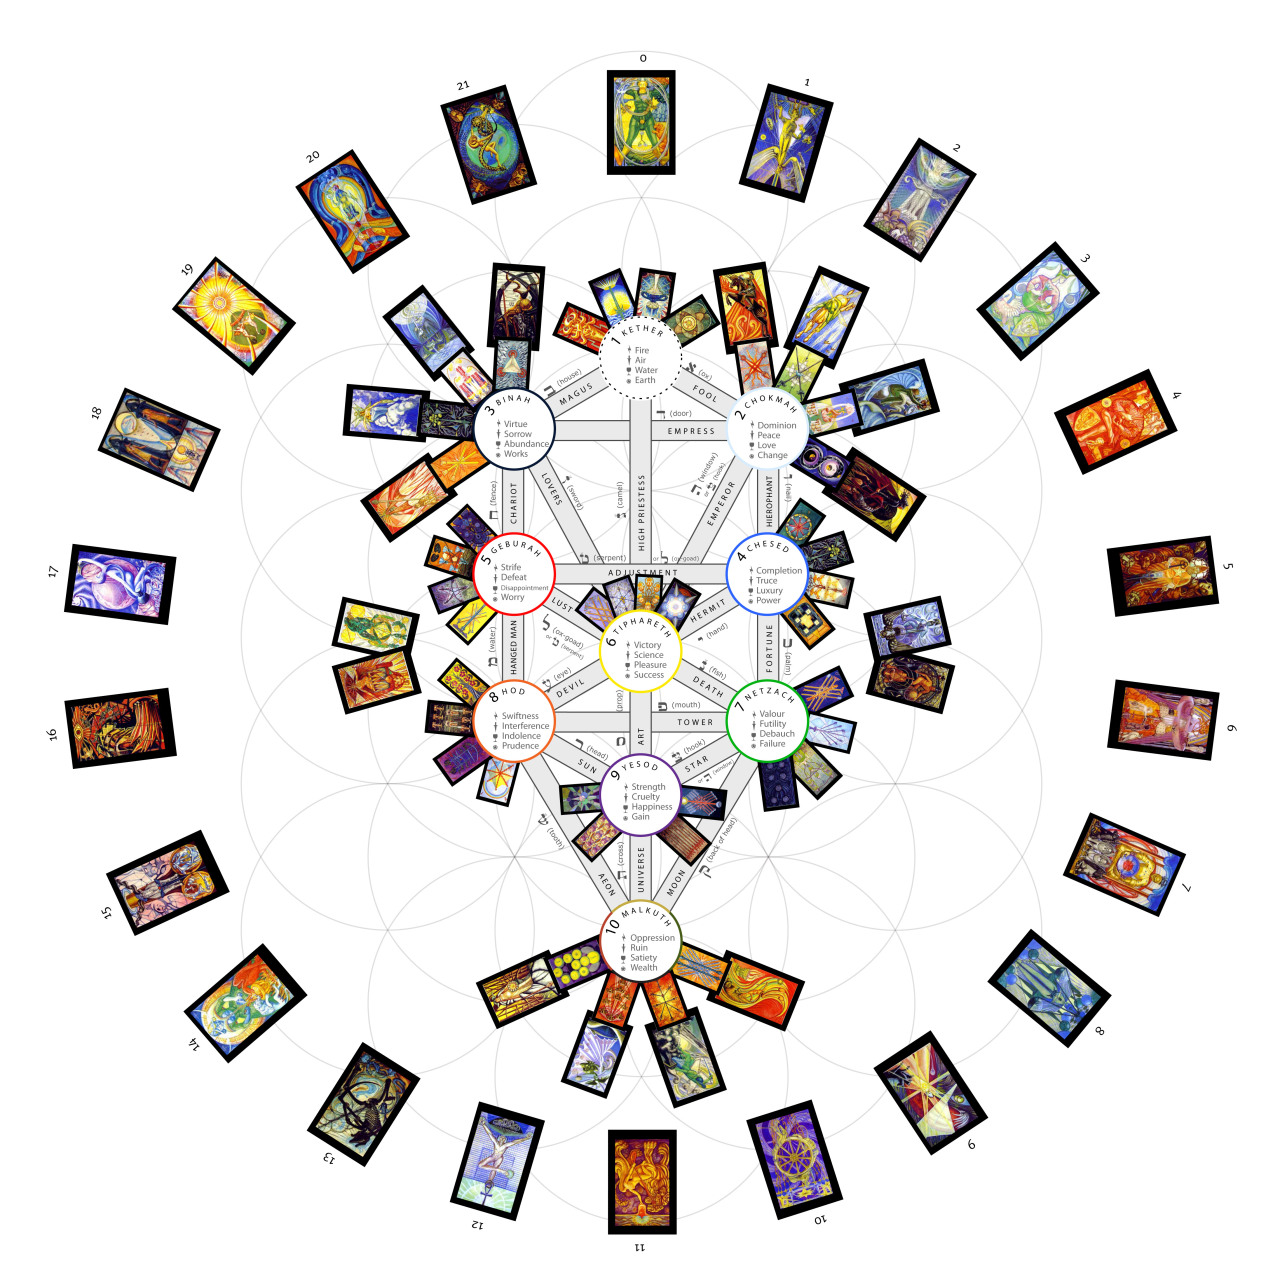 "illuminatizeitgeist:  Tarot card correspondences on the Tree of Life. ""With no other book than the Tarot, if he knew how to use it, could in a few years acquire universal knowledge, and would be able to speak on all subjects with unequalled learning and inexhaustible eloquence."" - Manly P. Hall, The Secret Teachings of All Ages"